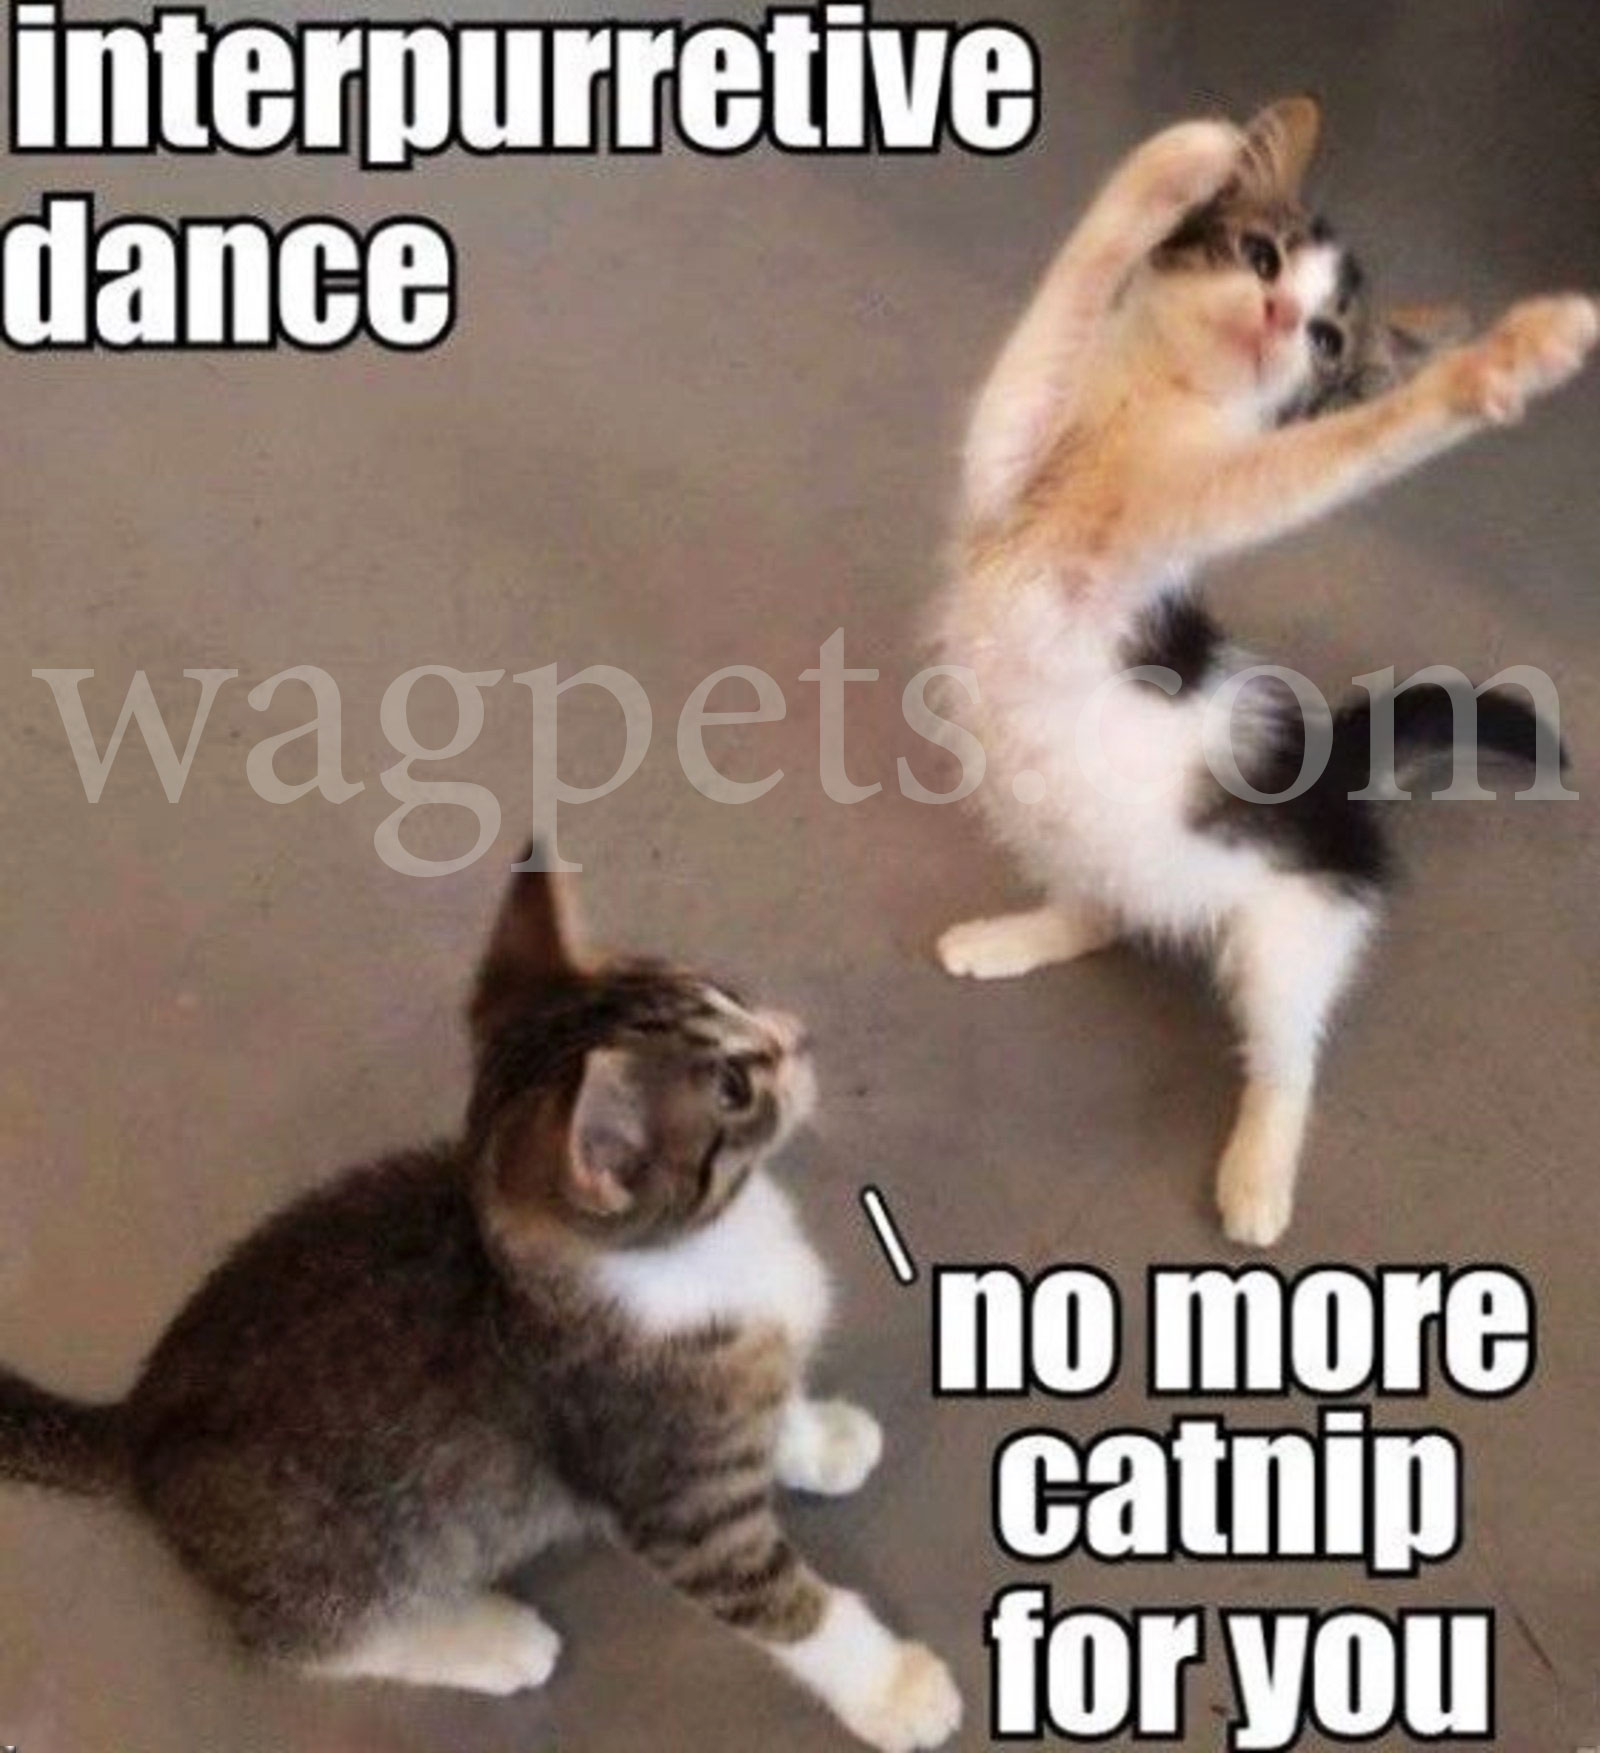 Interpurretive dance. No more catnip for you.